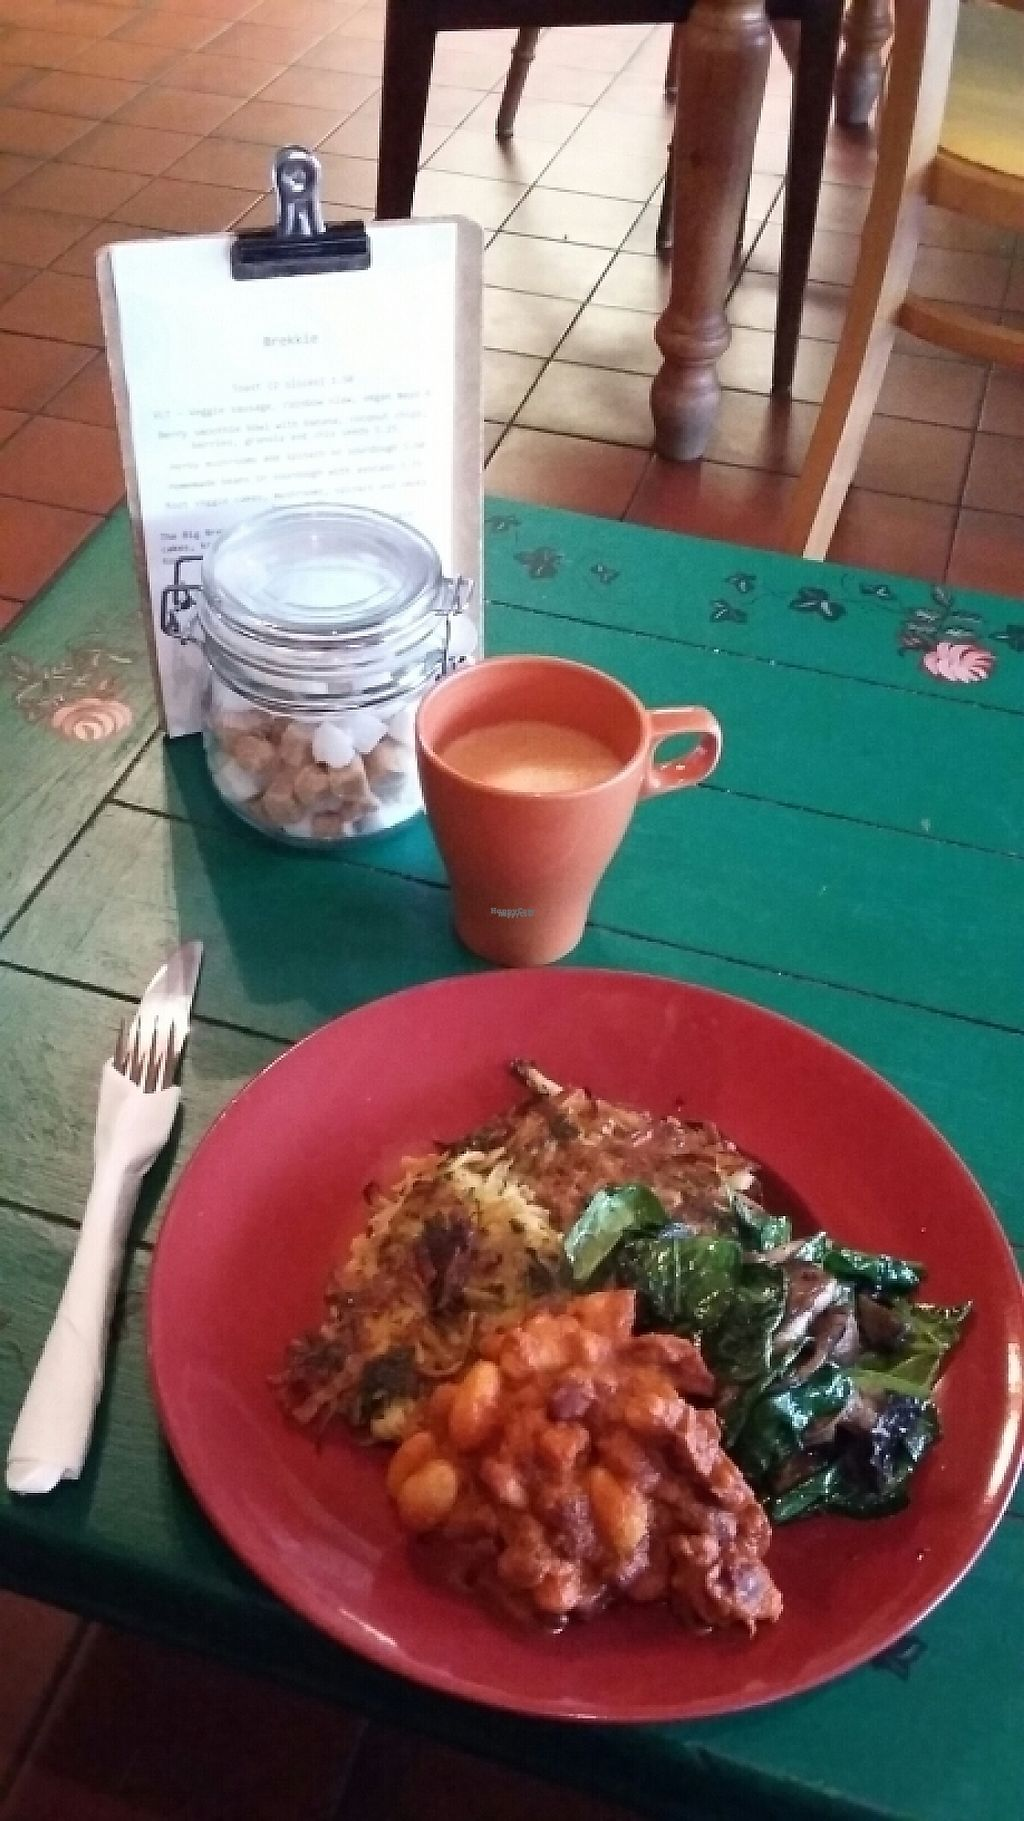 """Photo of The Wallflower Cafe  by <a href=""""/members/profile/WanderingWomble"""">WanderingWomble</a> <br/>Oat Latte with Root veggie cakes, mushrooms, spinach, smoky beans Wallflower breakie!  <br/> February 10, 2017  - <a href='/contact/abuse/image/63719/225064'>Report</a>"""